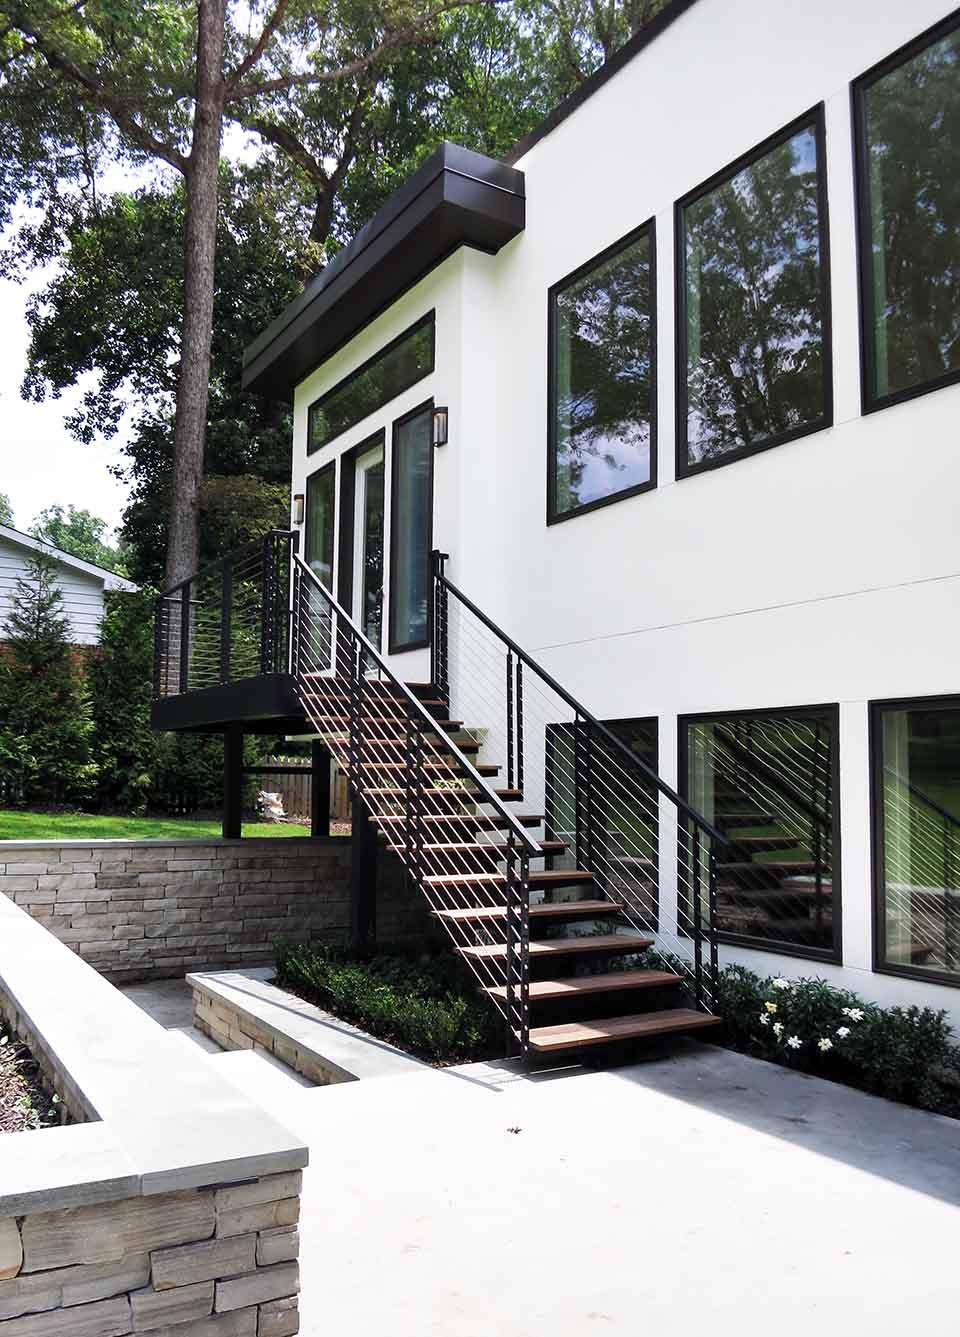 Exterior Stairs Southern Staircase Artistic Stairs | Outdoor Steel Staircase Design | Steel Framed Exterior | Indoor | Vertical Wire Balustrade | Prefabricated Steel | Stair Handrail